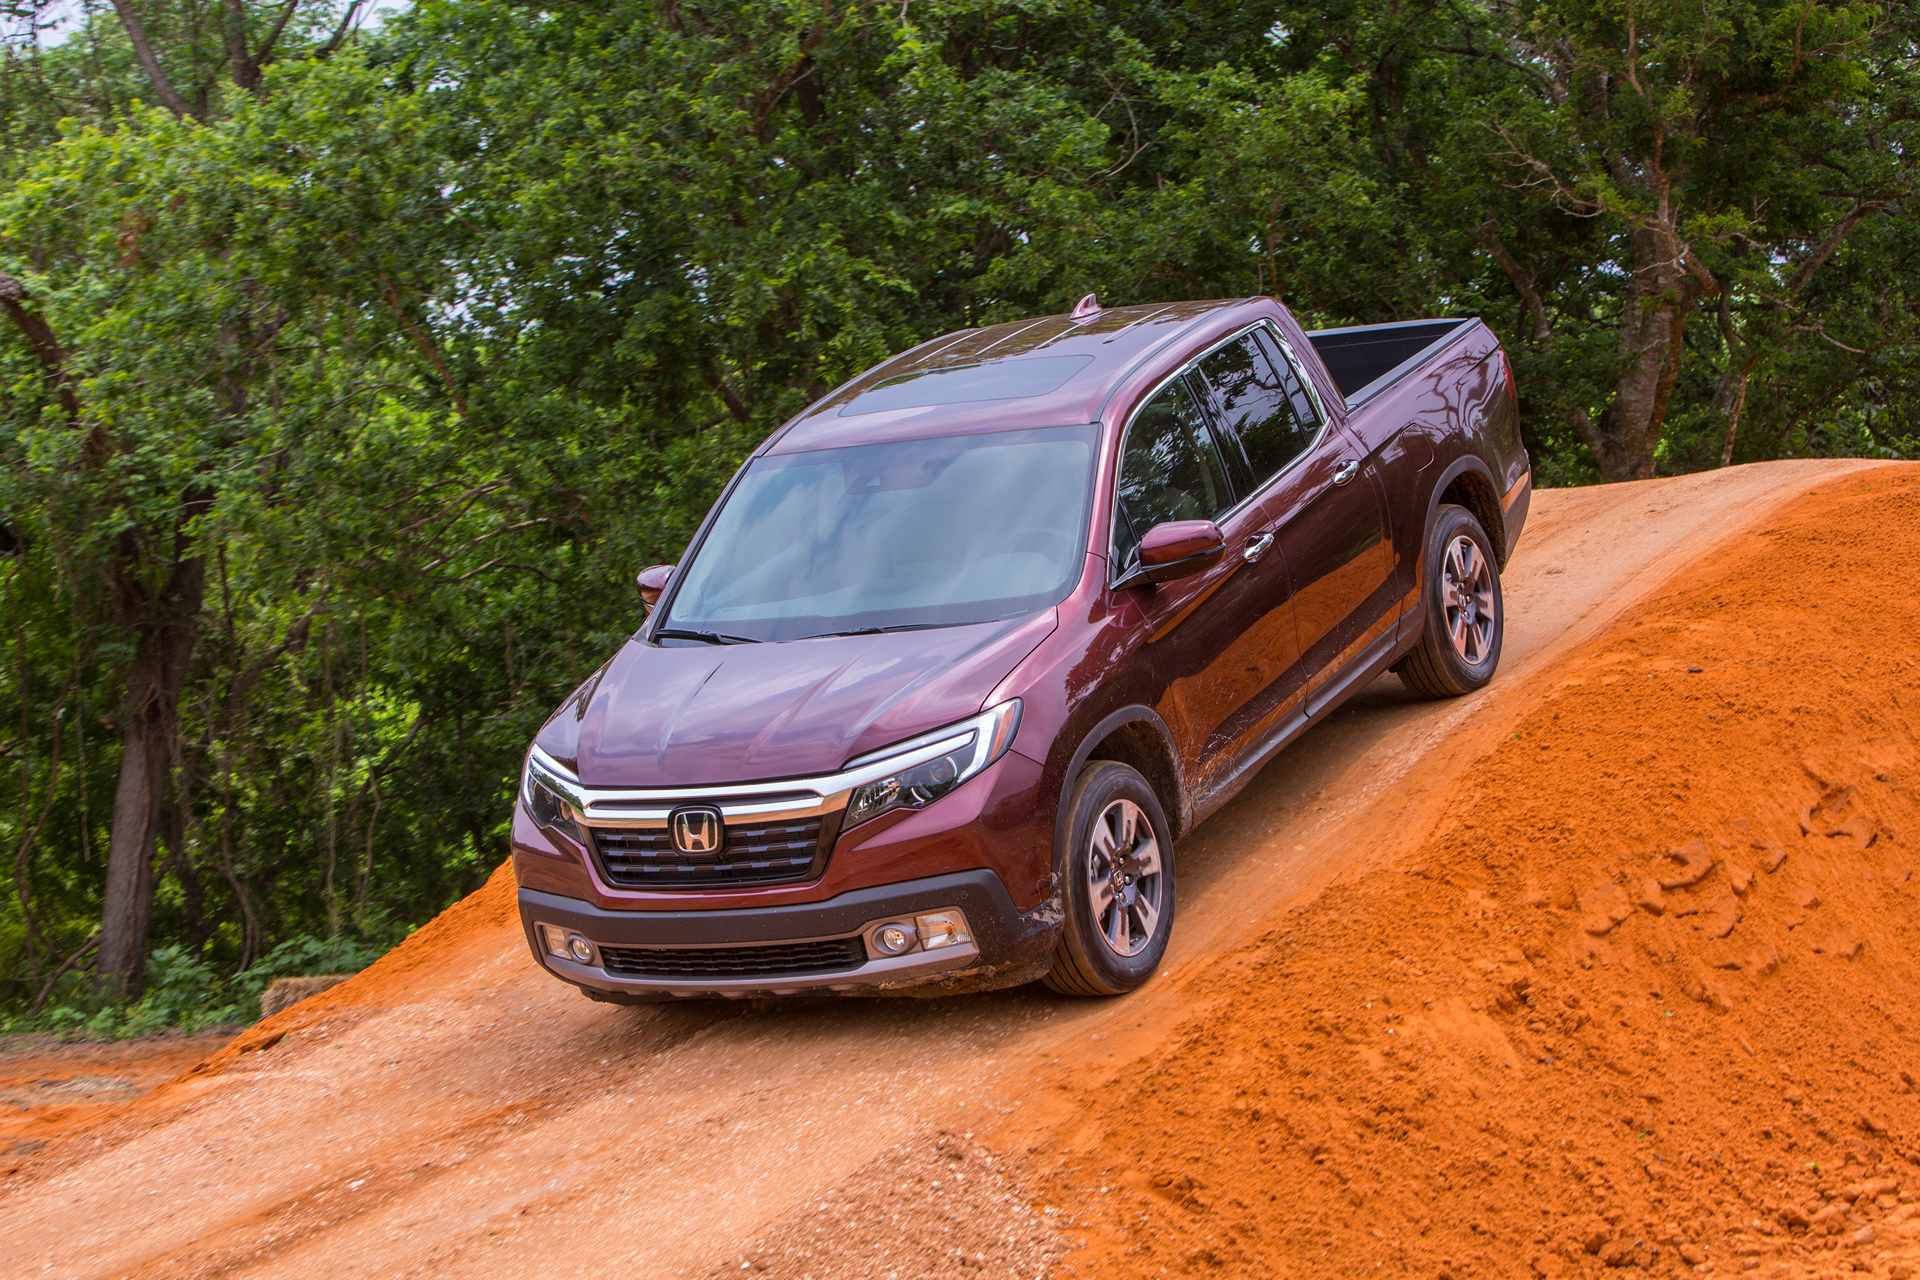 2017 Honda Ridgeline © Honda Motor Co., Ltd.